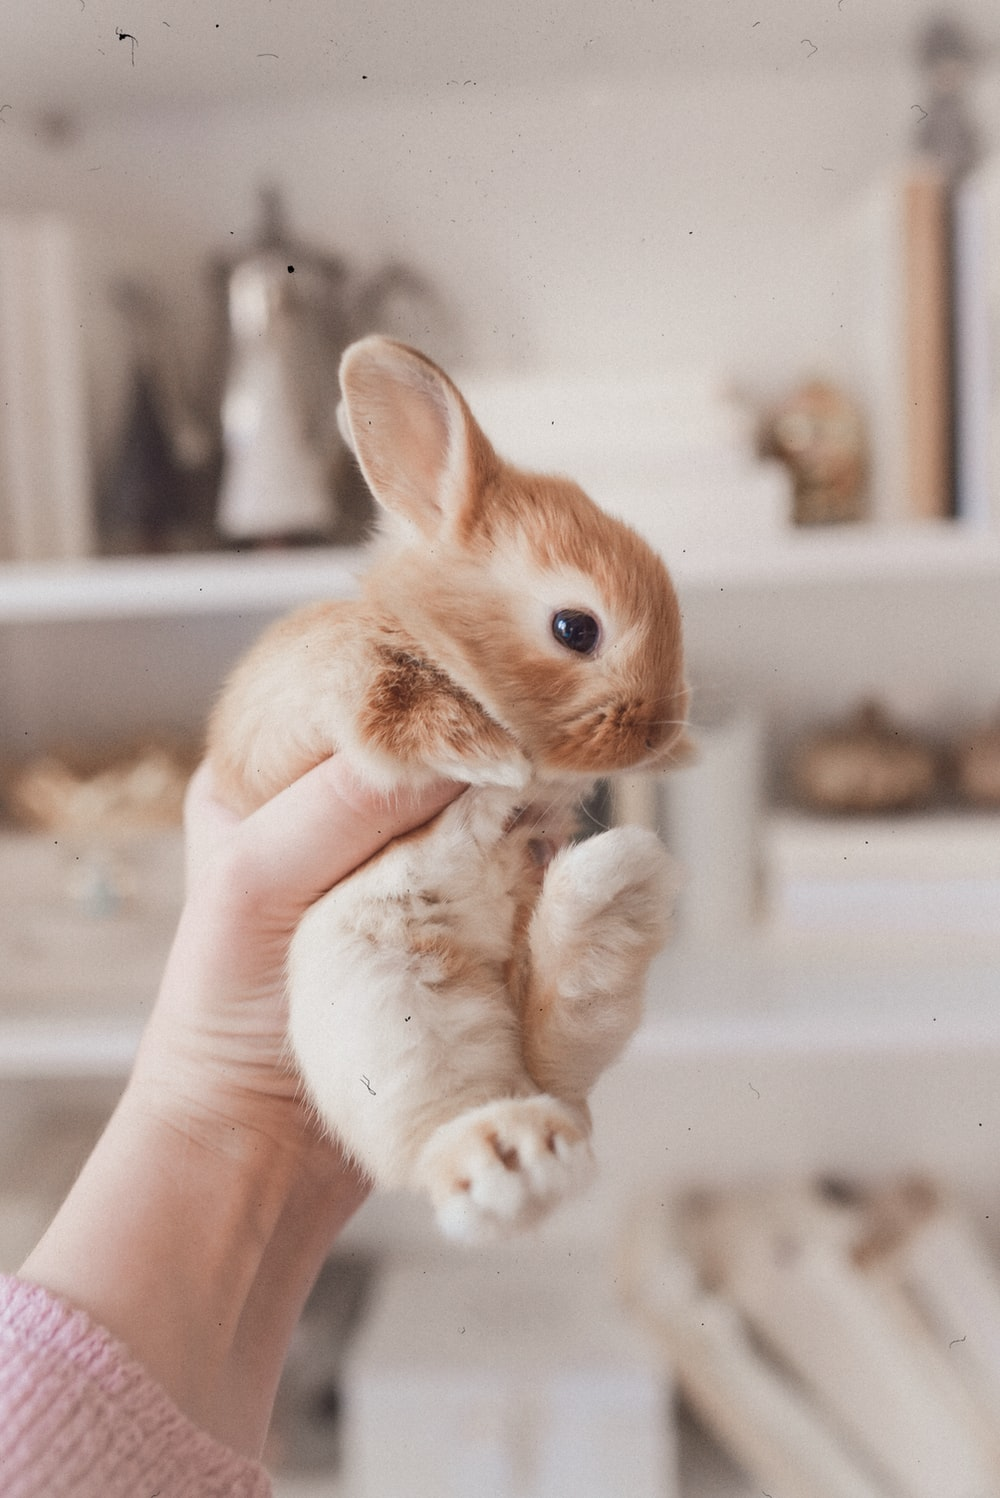 person holding white and brown rabbit